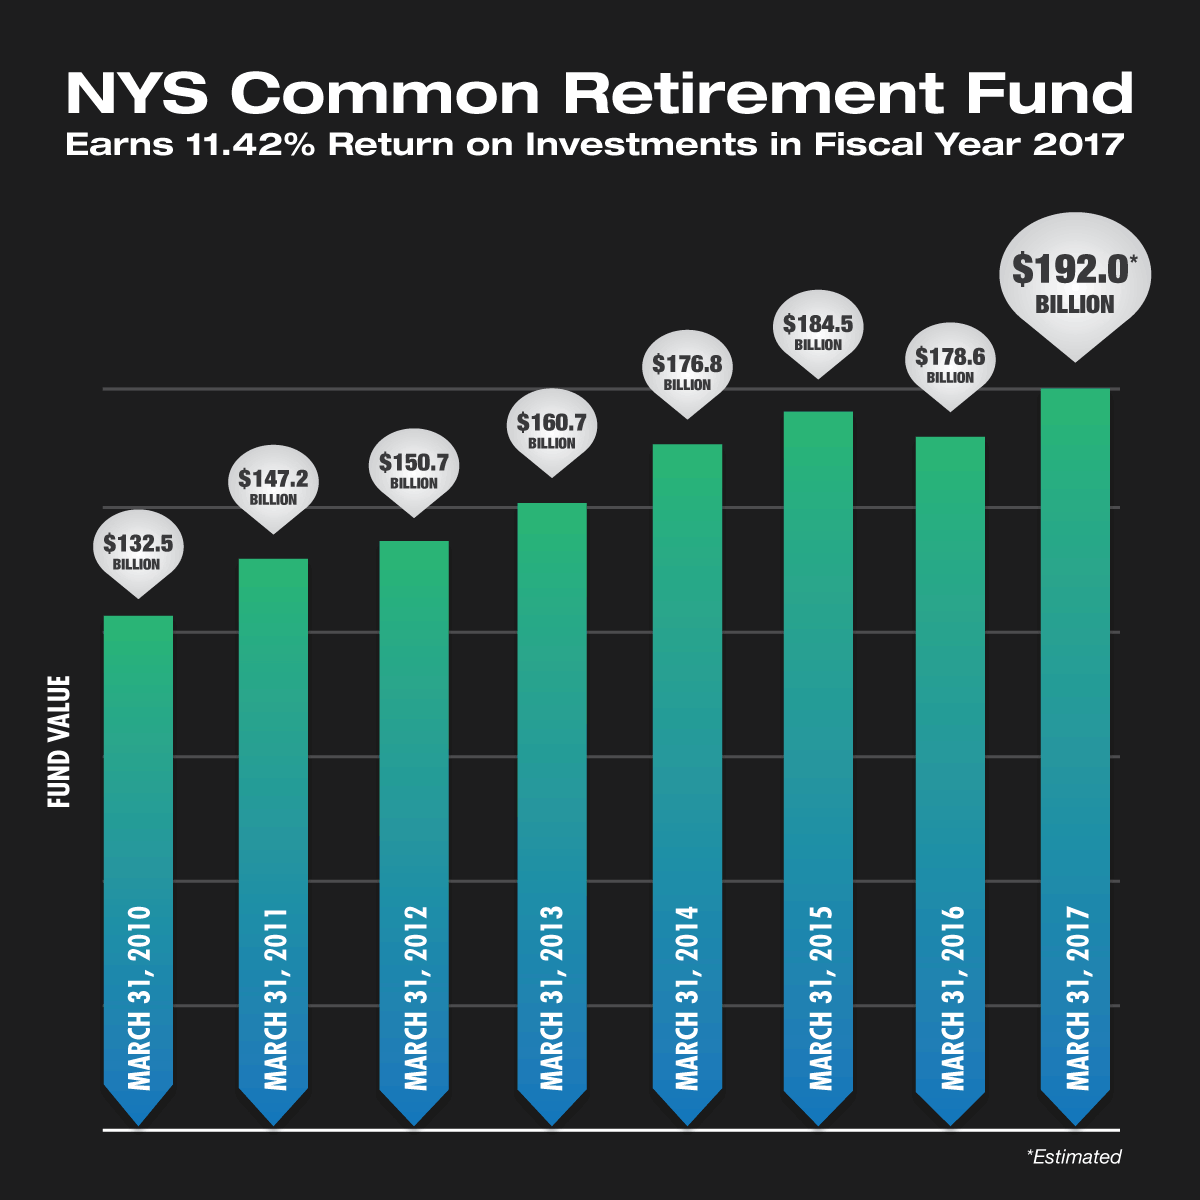 NYS Common Retirement Fund return on investments Fiscal Year 2017